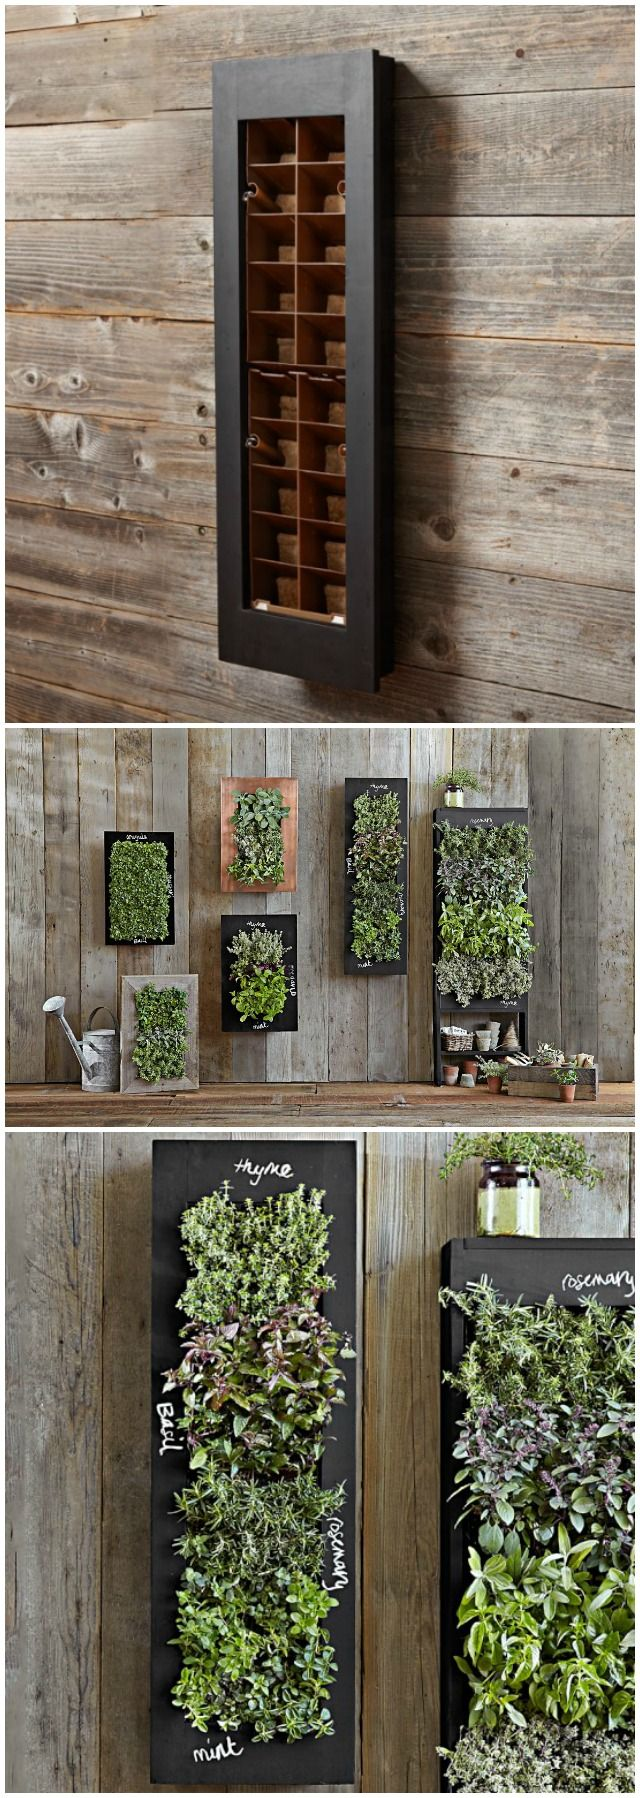 Herb Garden Kitchen 17 Best Ideas About Wall Herb Gardens On Pinterest Growing Herbs